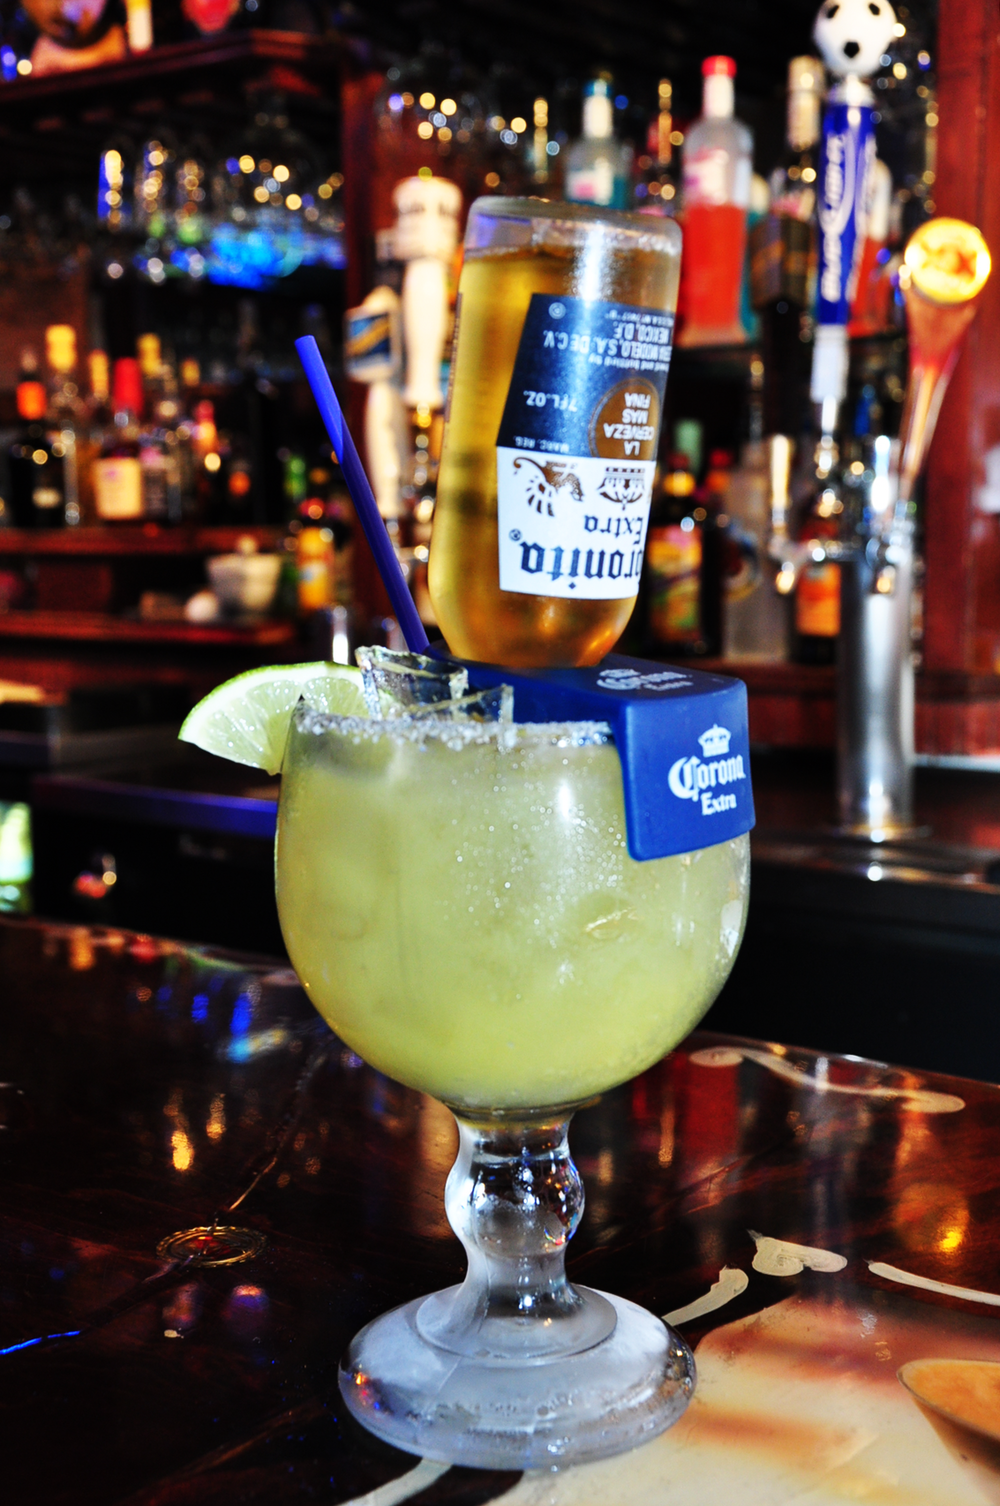 Coronita Margarita